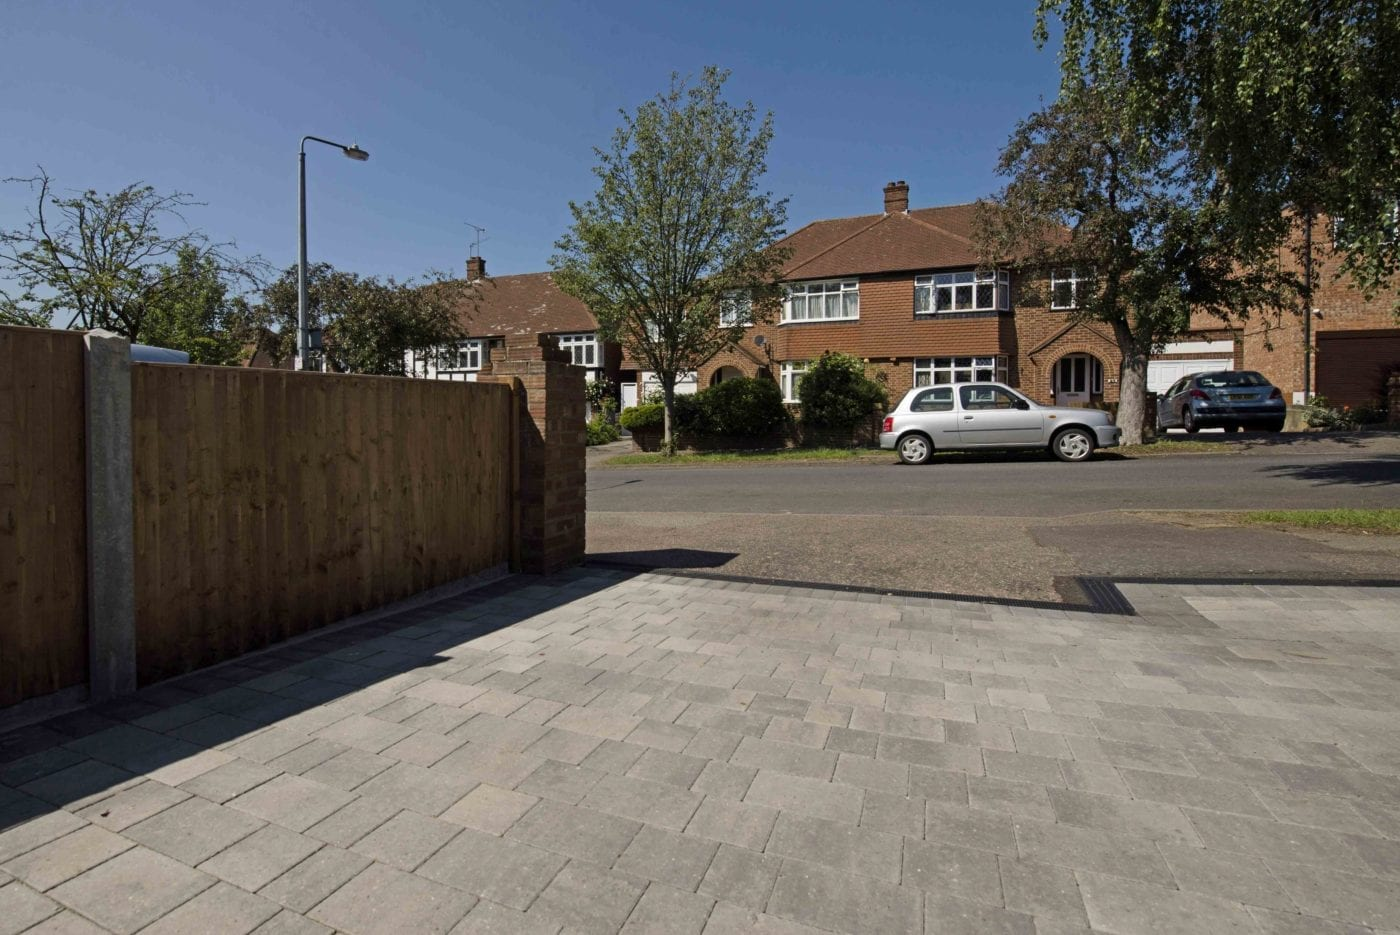 Driveway with Beta Block Paving and Charcoal Edging